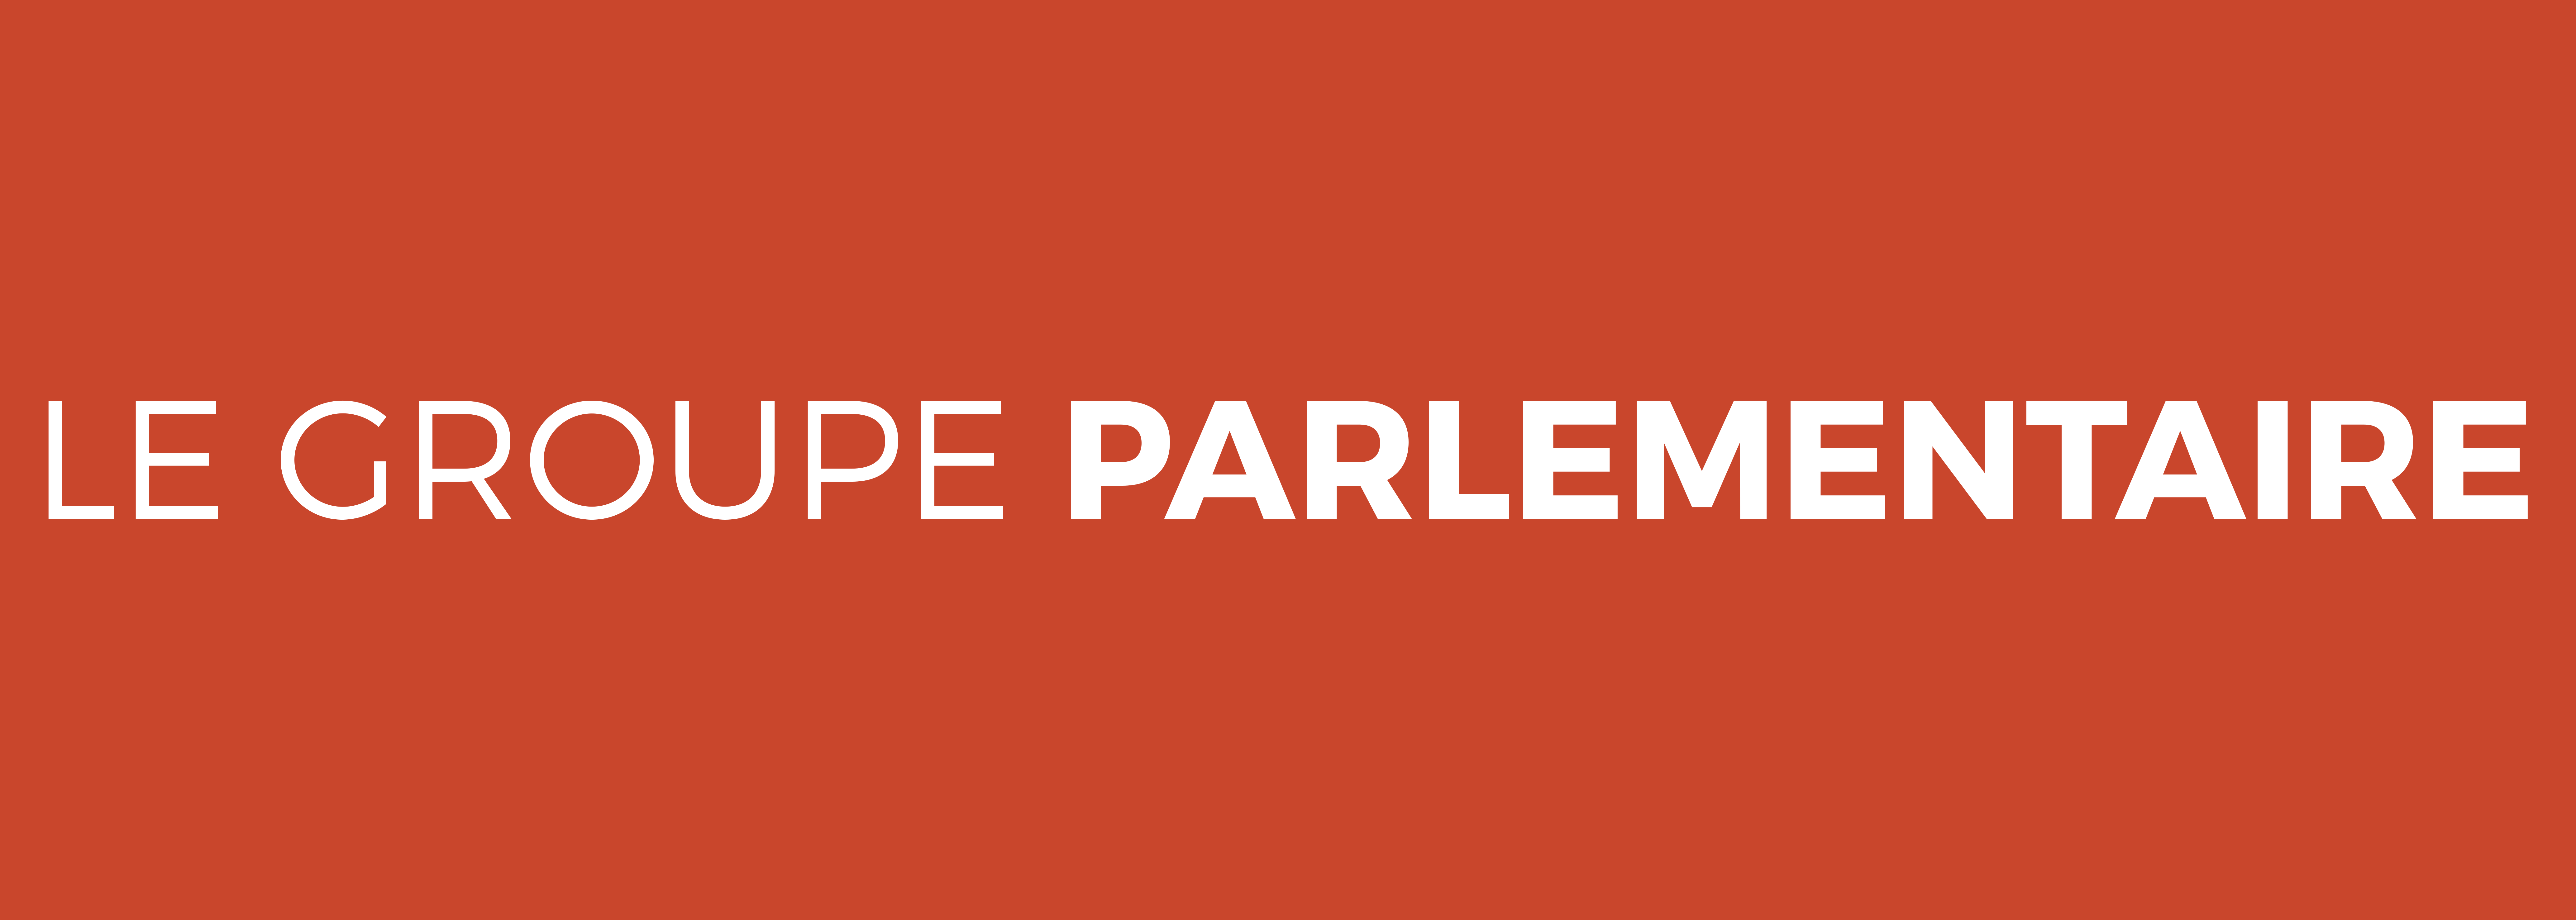 Le groupe parlementaire